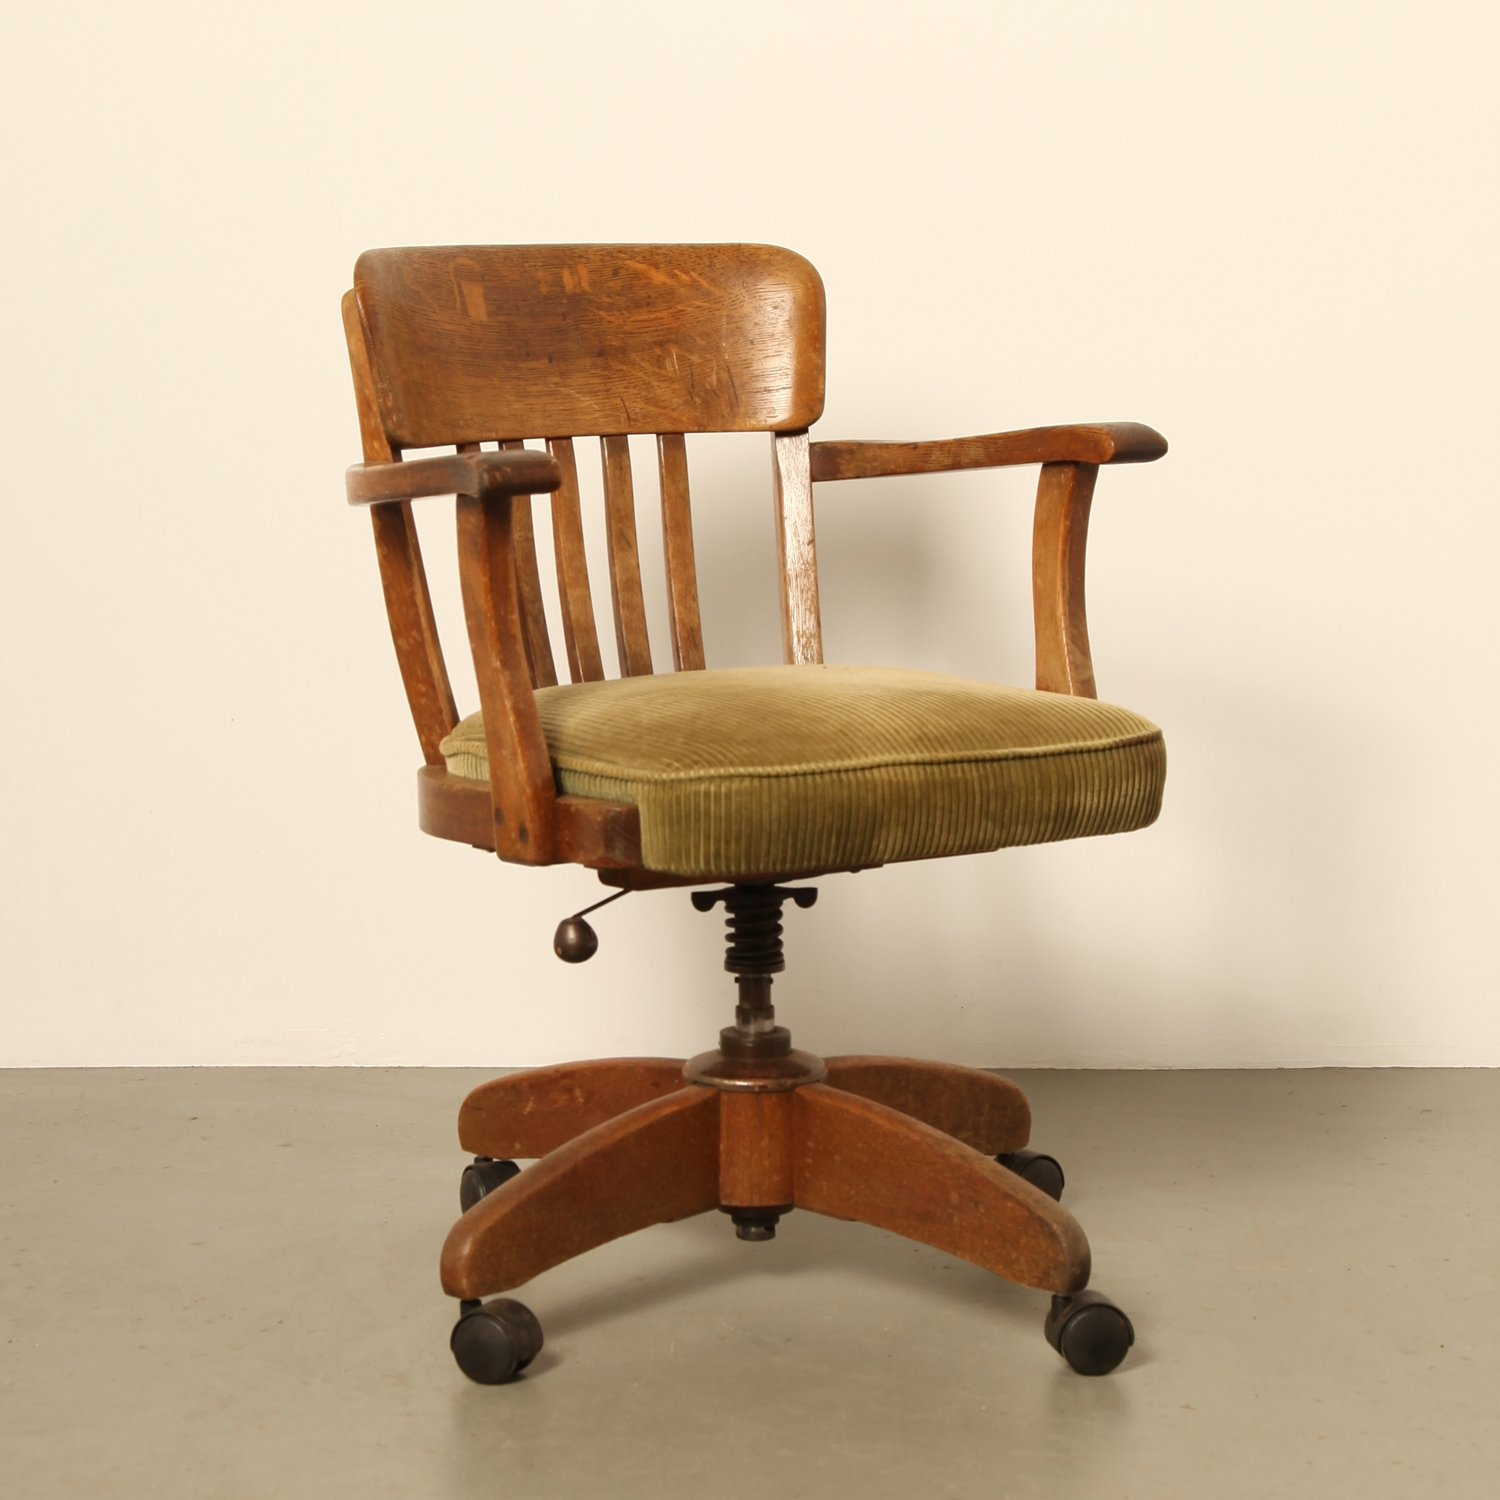 low priced c8ffc 3ca7a Vintage office chair, 1920s | #68146